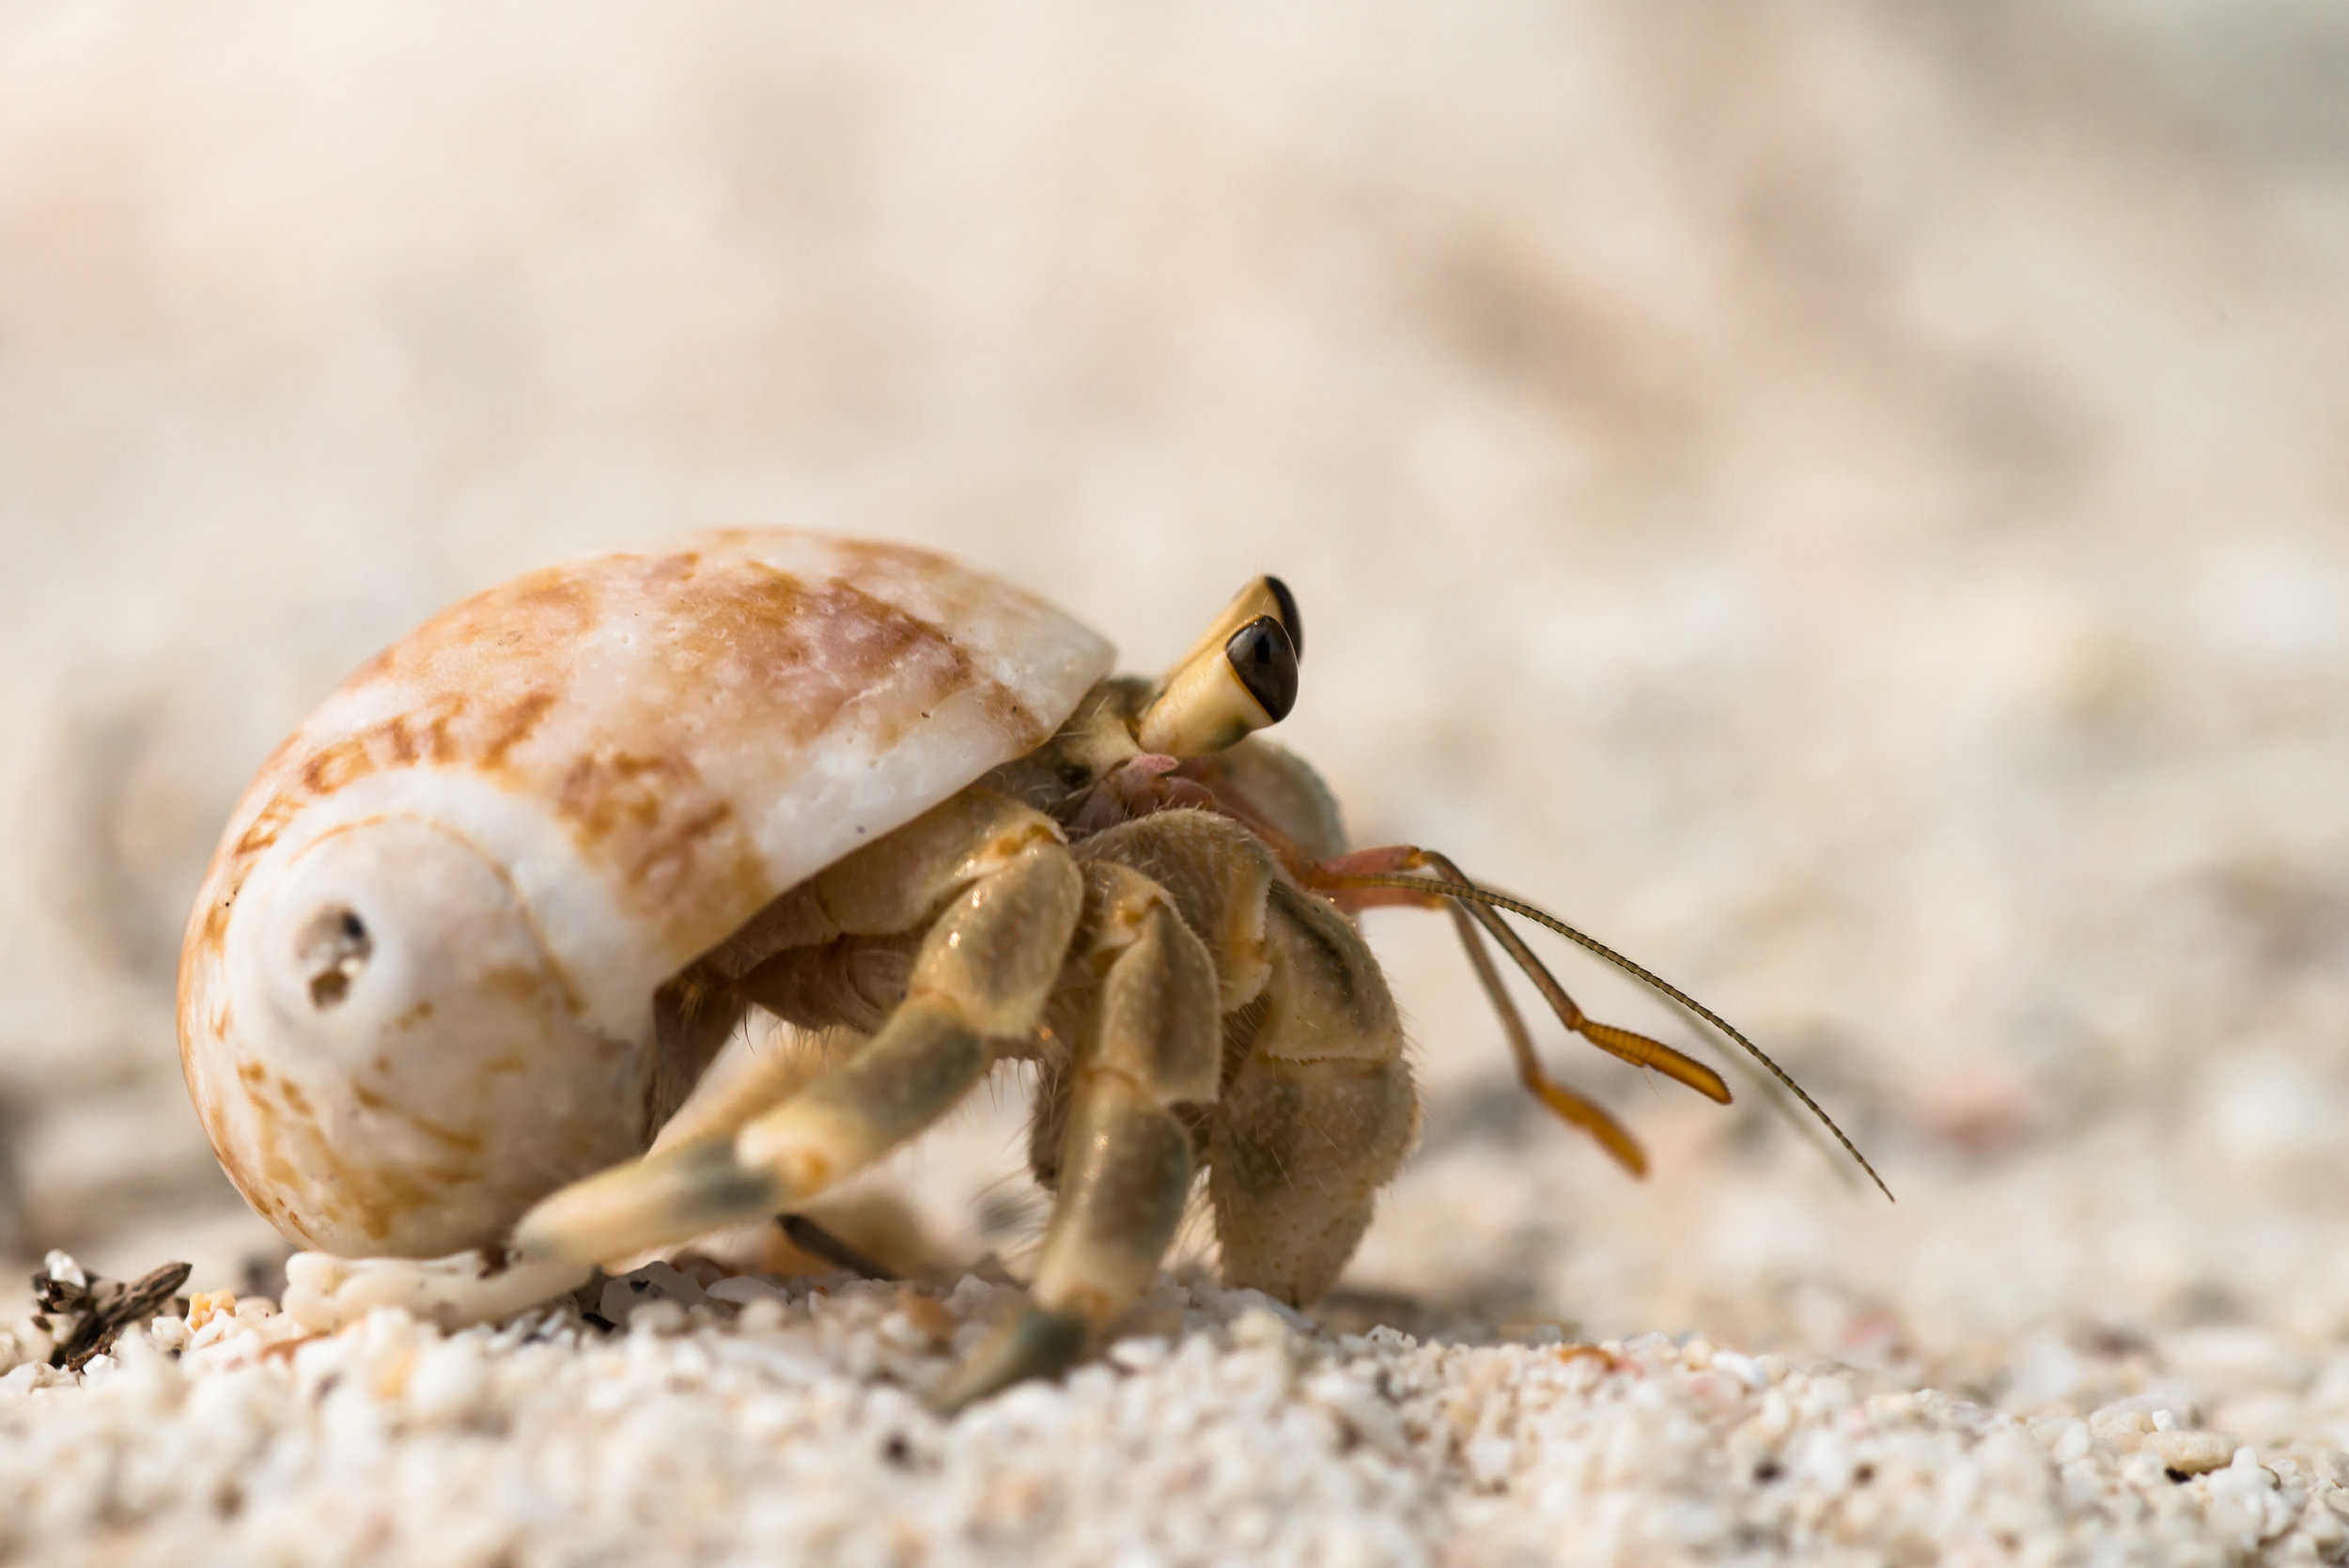 Freedom for Hermit Crabs - We are proud to be funding the first nationwide initiative advocating for wild hermit crab freedom launched by a grassroots organization called Plight of the Hermies. This initiative is centered around a corporate campaign focusing on Sunsations (one of the largest retailers of beach products on the East Coast) to remove hermit crabs from sale in its stores. These wonderful complex little creatures can live over 30 years in the wild, but barely survive a few months captive in their tiny cages. Our funds will be used for print materials, billboard advertising, beach sand art, protest organization, and petition deliveries. The objective of the campaign is for Sunsations to commit to ending the sale of hermit crabs as trinkets, with the anticipated effect of bringing other retailers to commit to the same and thereby saving the lives of hundreds of thousands of animals!(Photo credit: thai national parks)